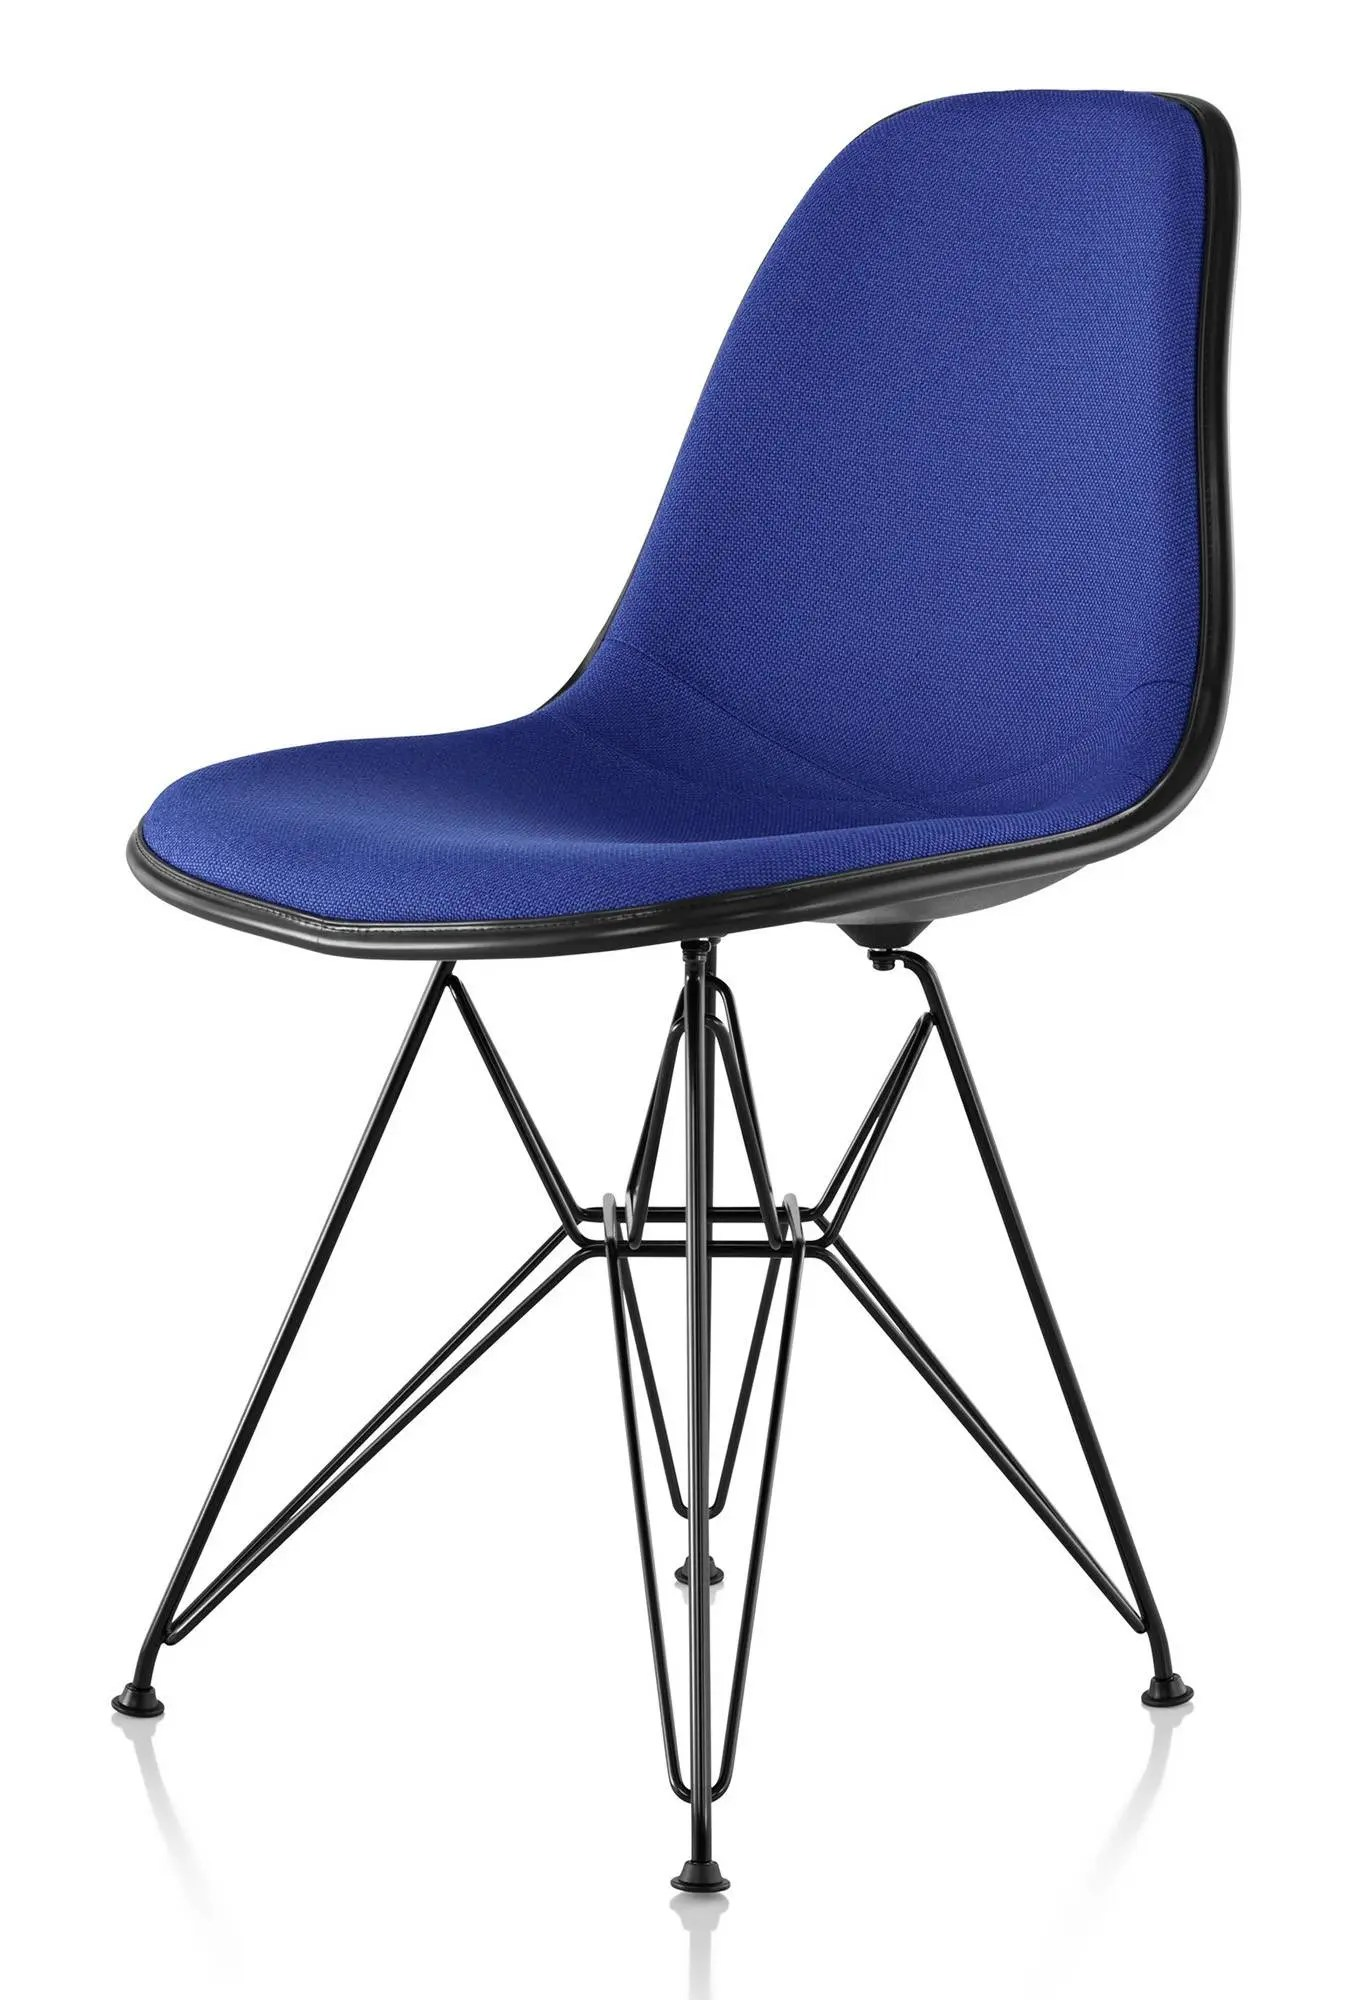 dining chairs canada upholstered pier 1 chair swing herman miller eames® molded fiberglass side shell - gr shop